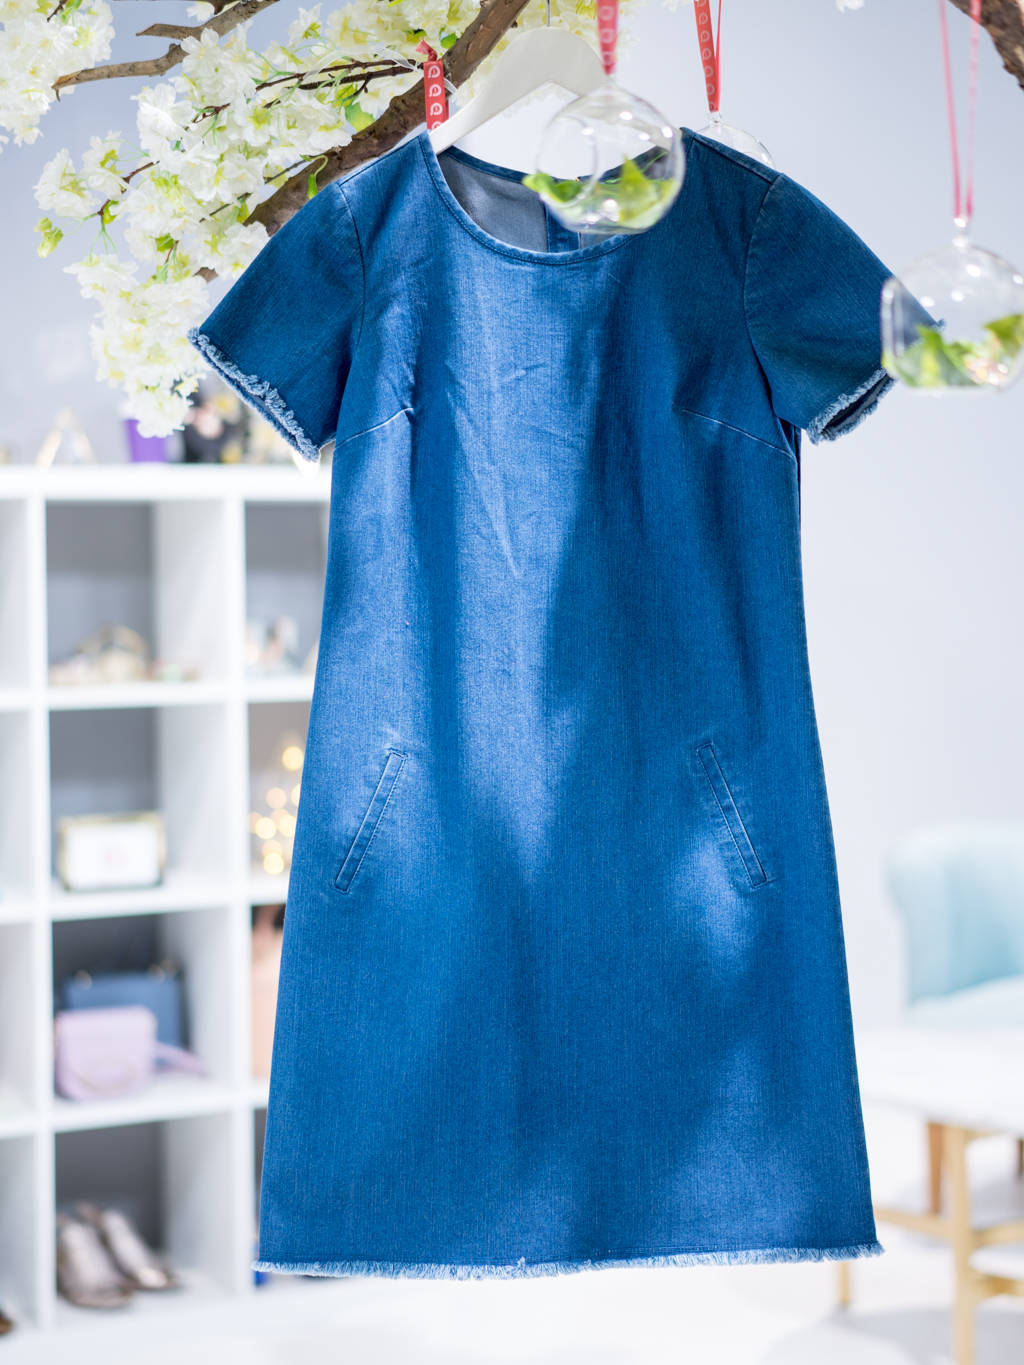 Denim dress: a new wardrobe staple